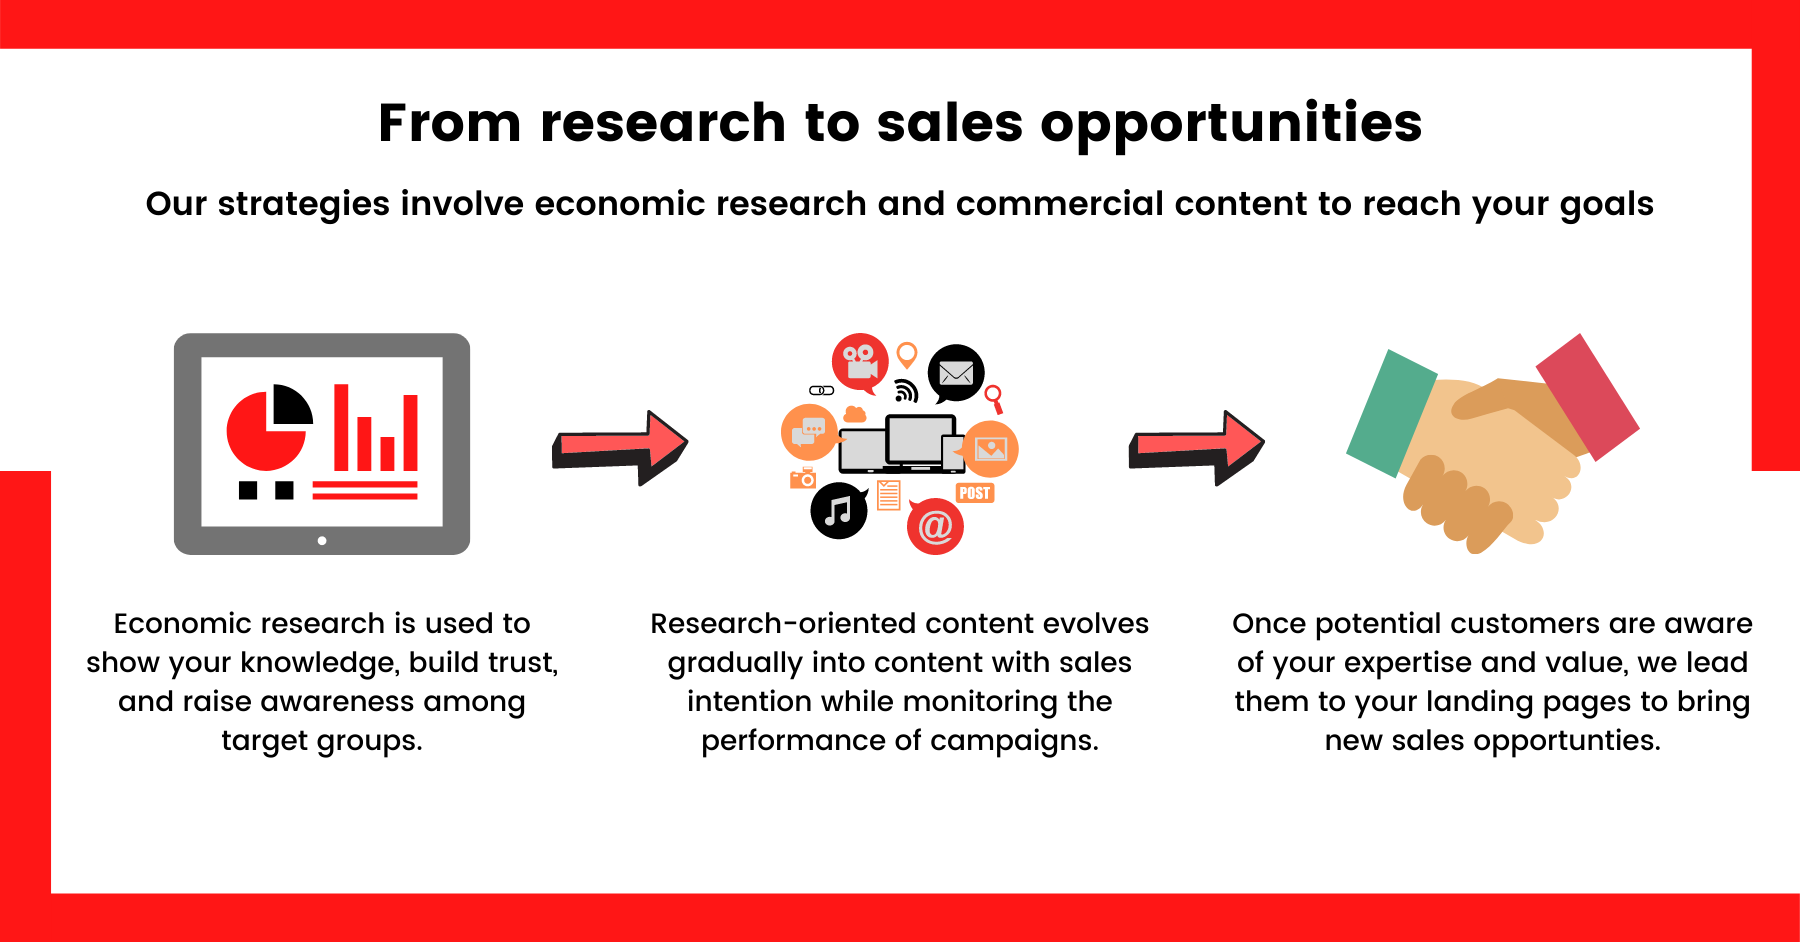 From research to sales opportunities